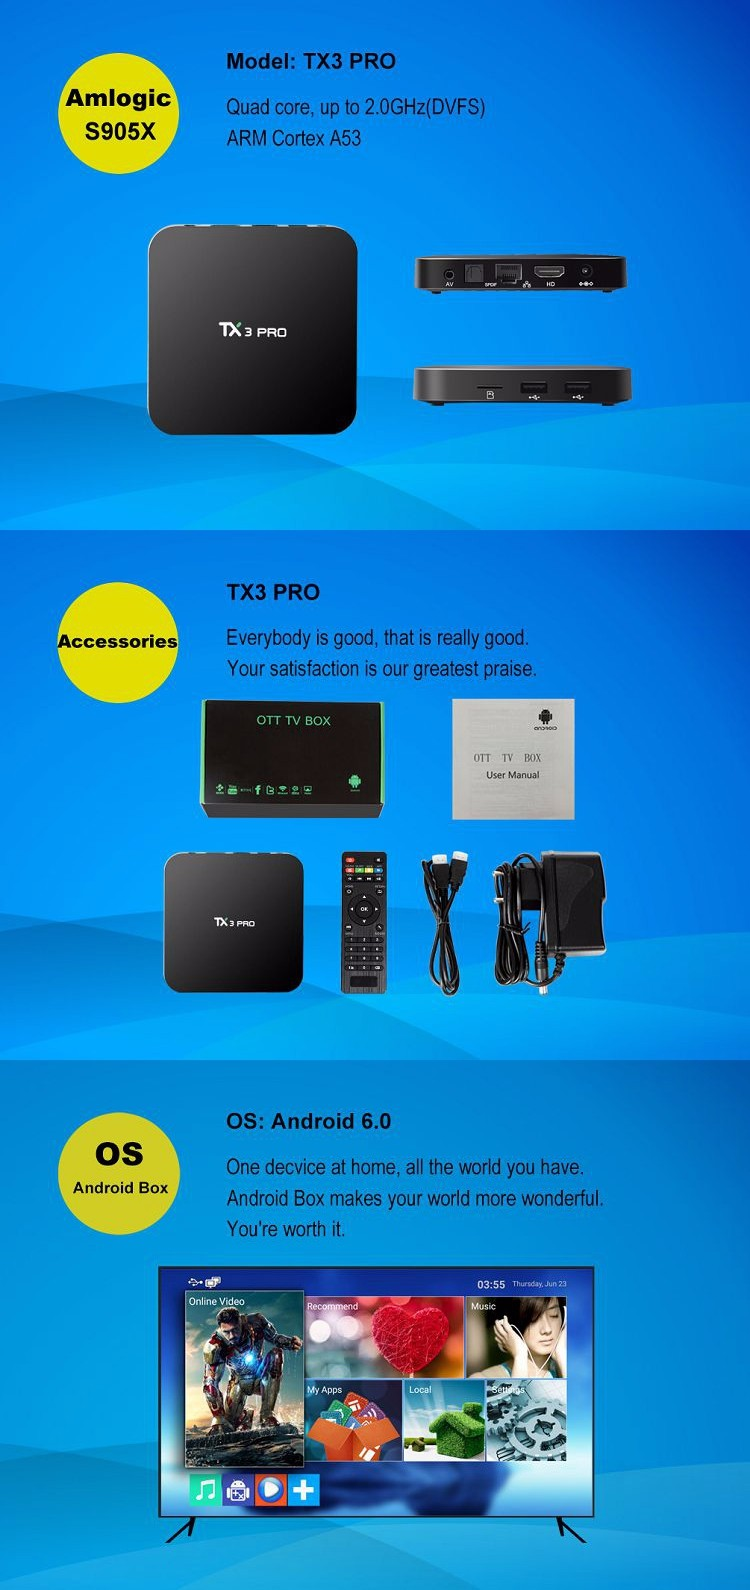 Download User Manual ott tv box newest KD android tv box TX3 Pro Dual Core 6.0 Hot Selling than tv box